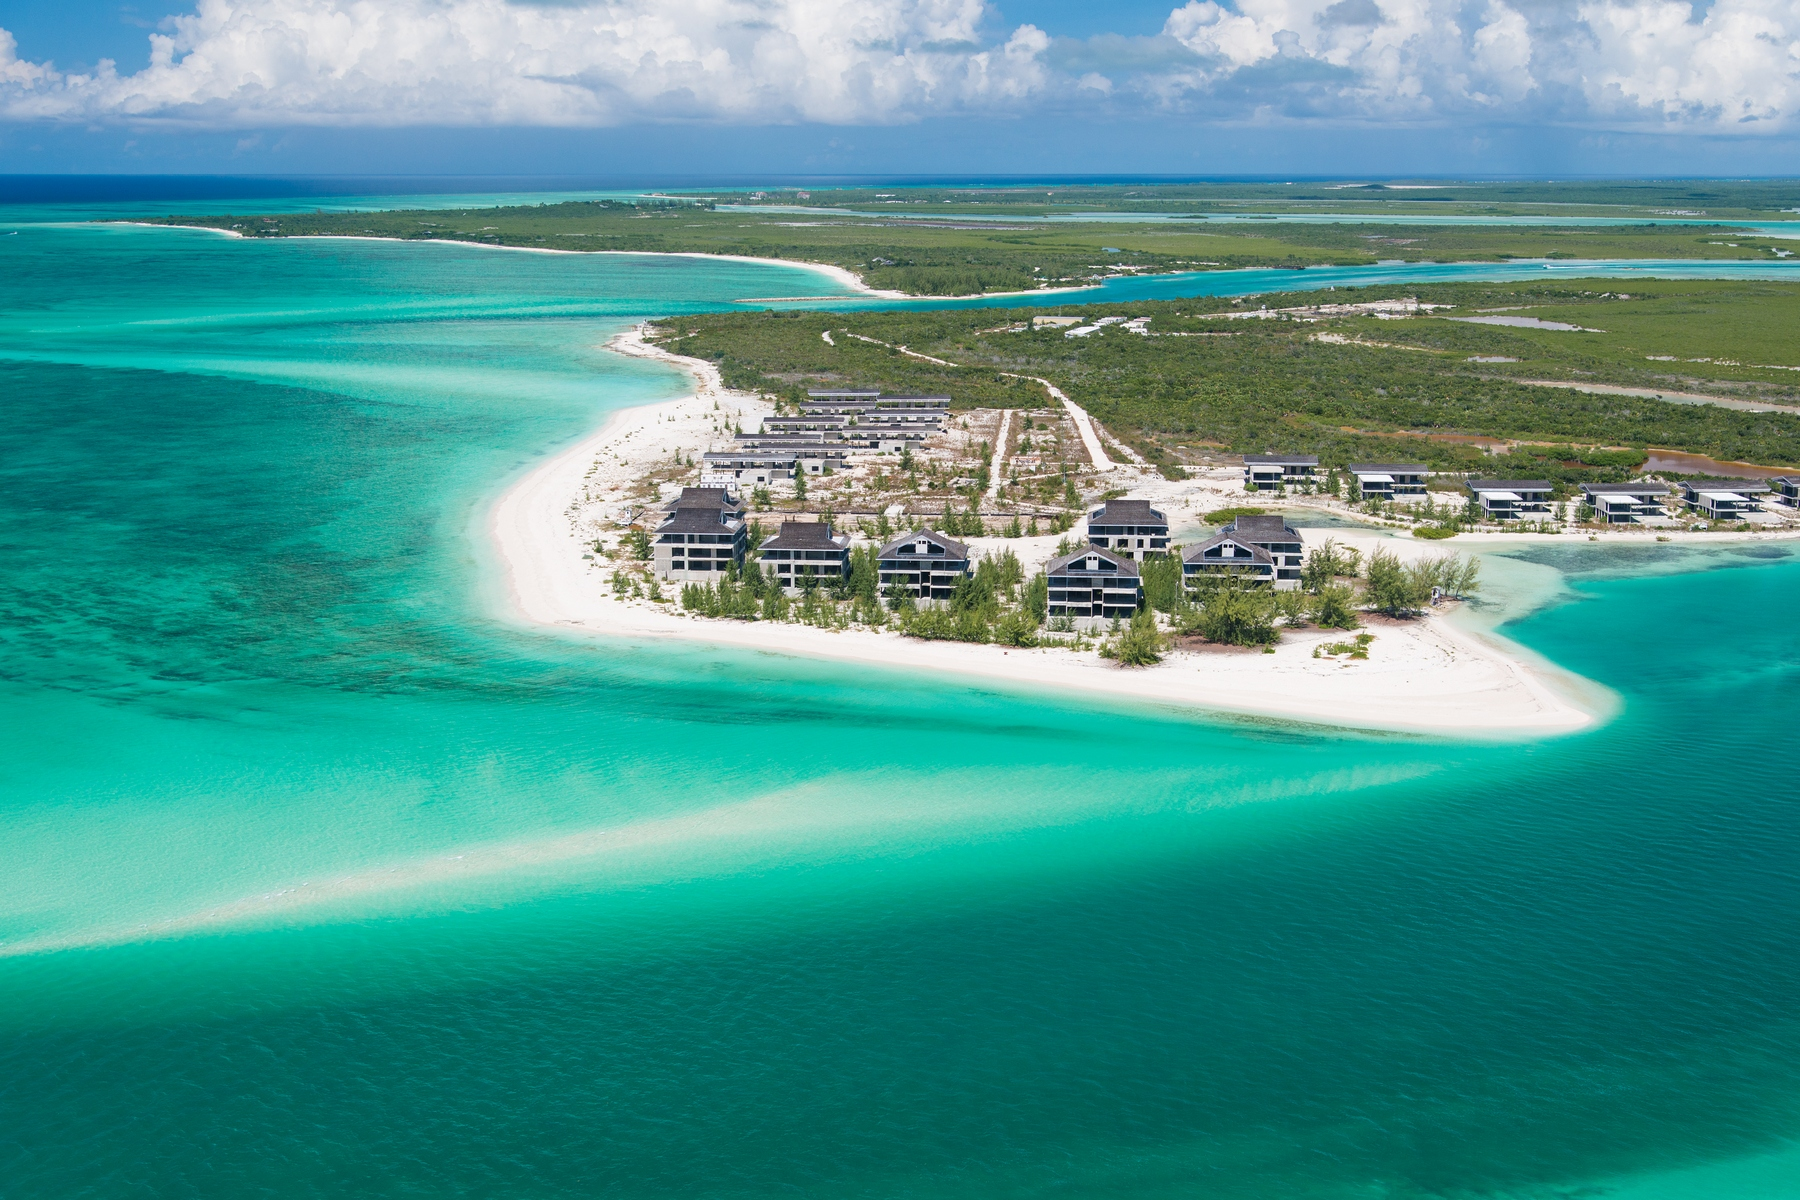 Property For Sale at Dellis Cay Re-Development Opportunity